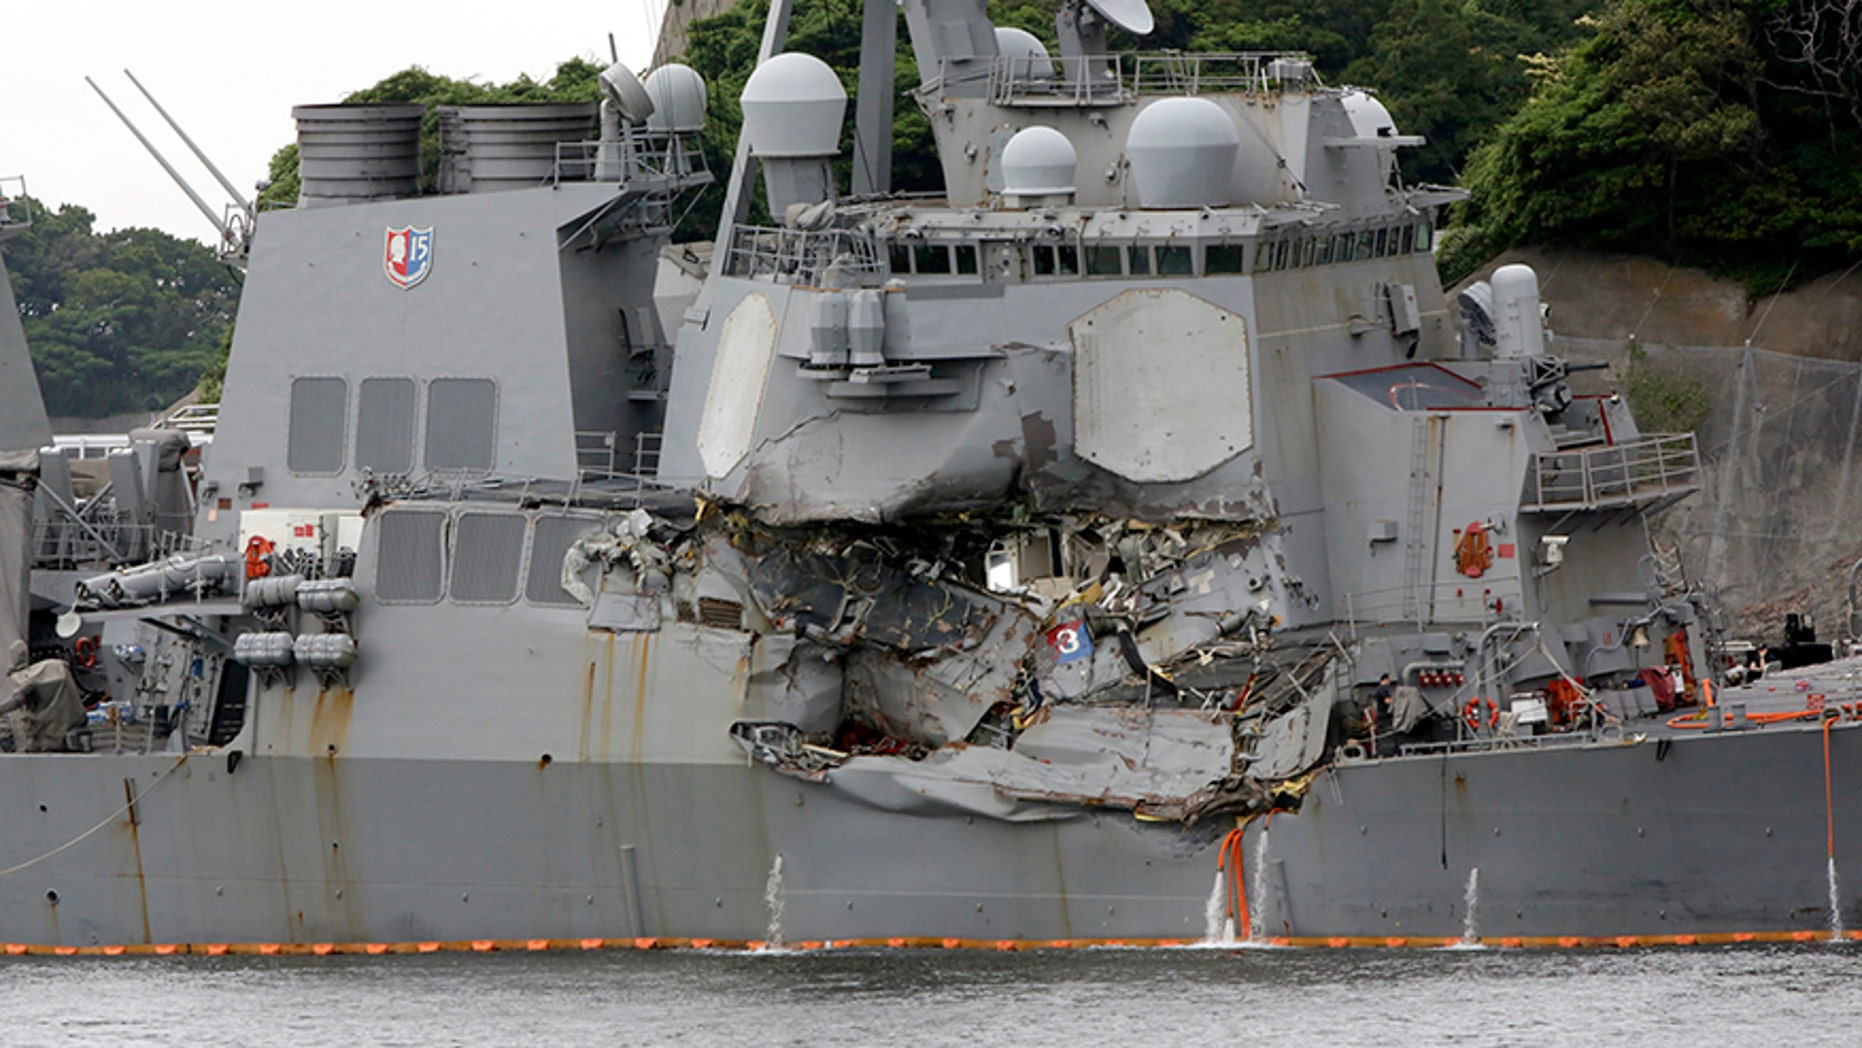 June 18, 2017: The damaged USS Fitzgerald is docked at the U.S. Naval base in Yokosuka, southwest of Tokyo after colliding with Philippine-flagged container ship ACX Crystal off Japan.